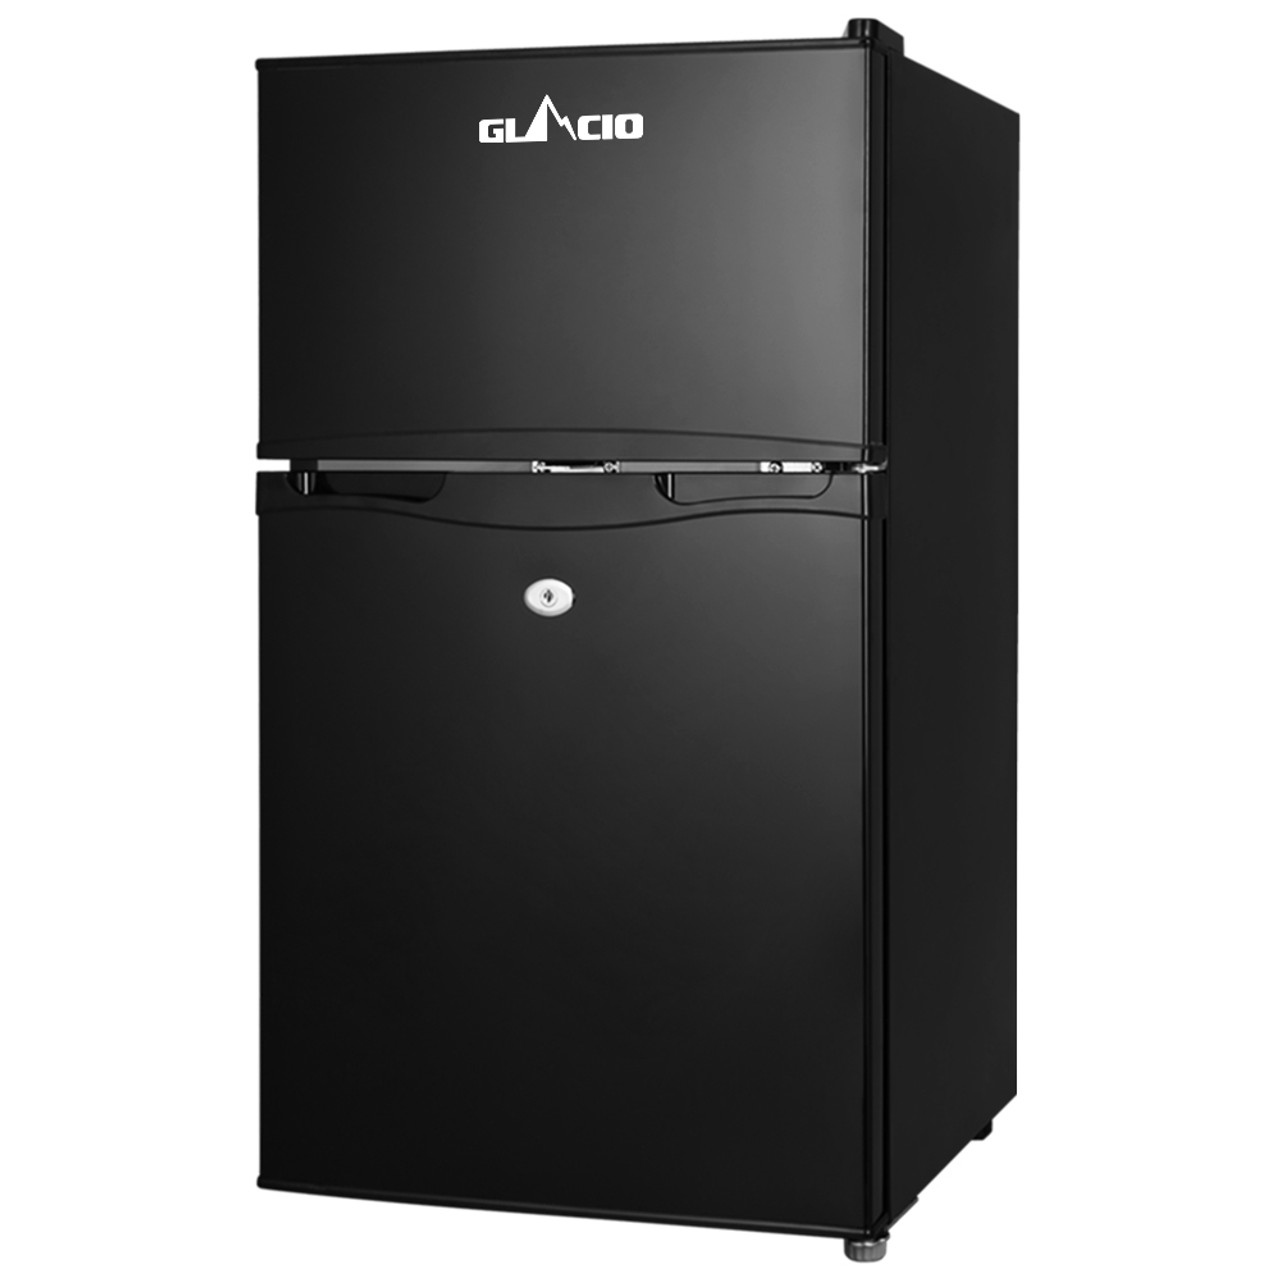 Glacio 90L Fridge Freezer Upright 12V/24V/240V Caravan 4WD Car Camping - Black